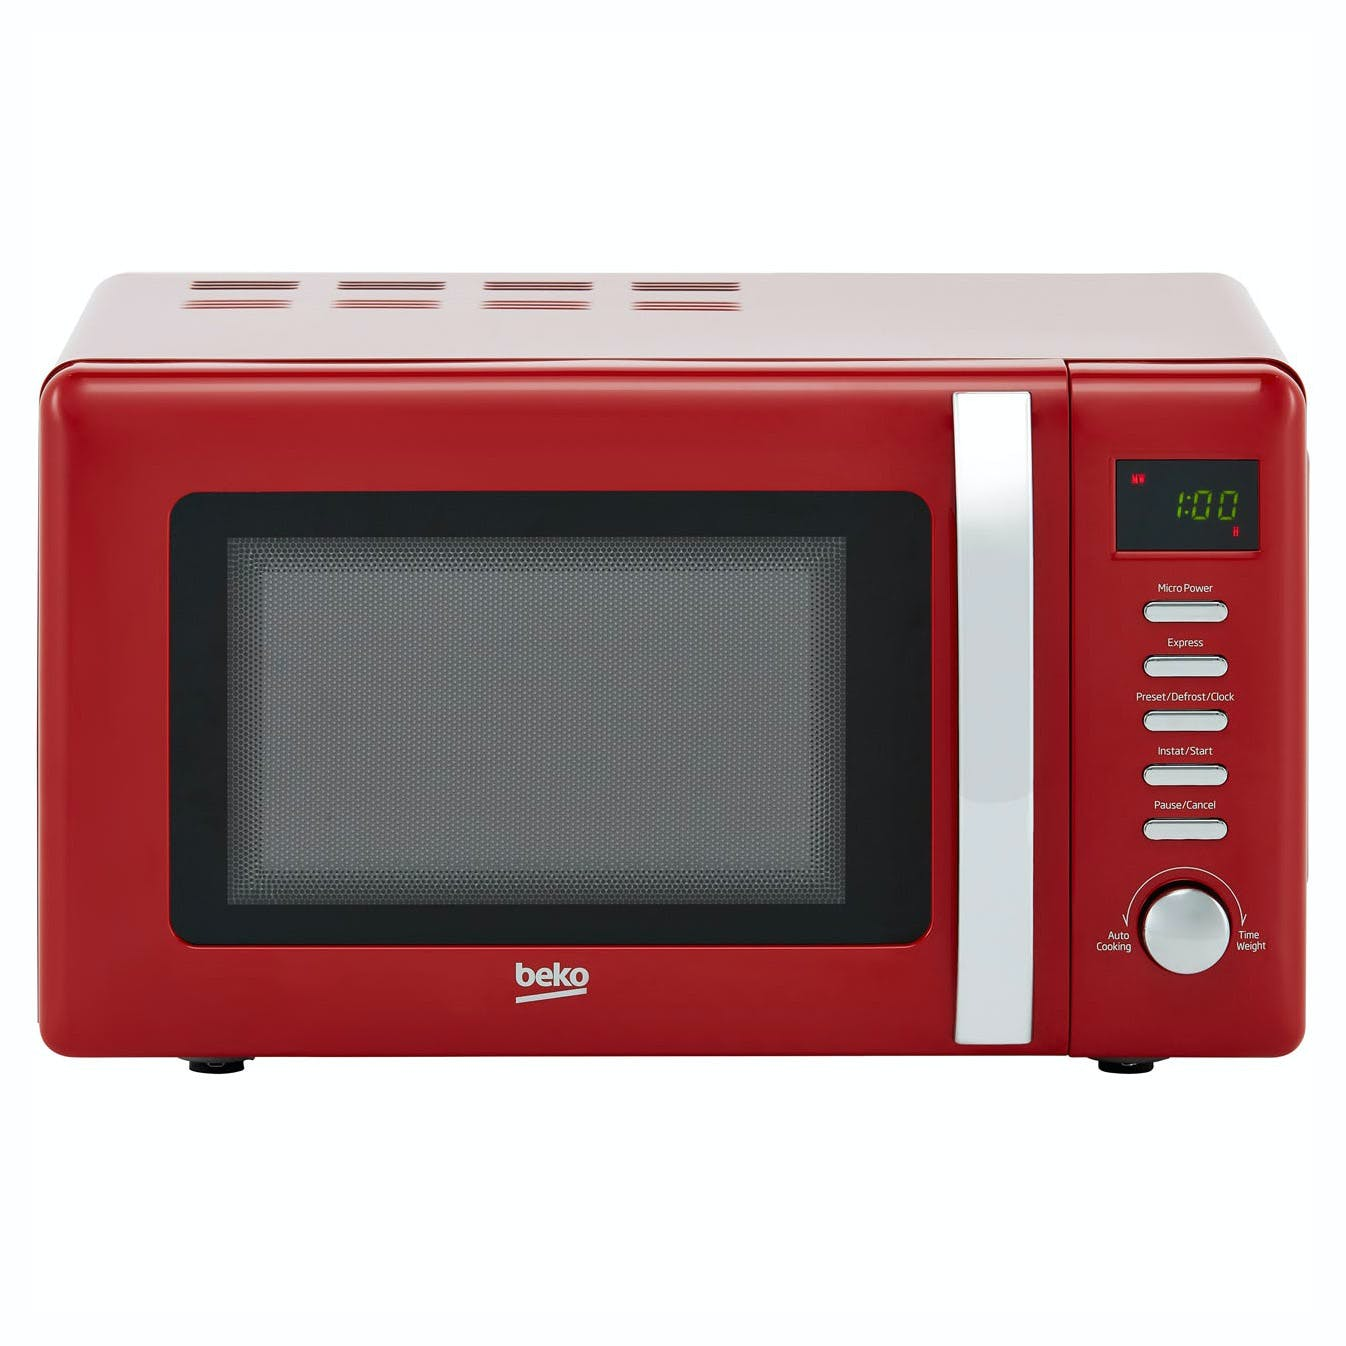 Beko Moc20200r Retro Style Microwave Oven In Red 20 Litre